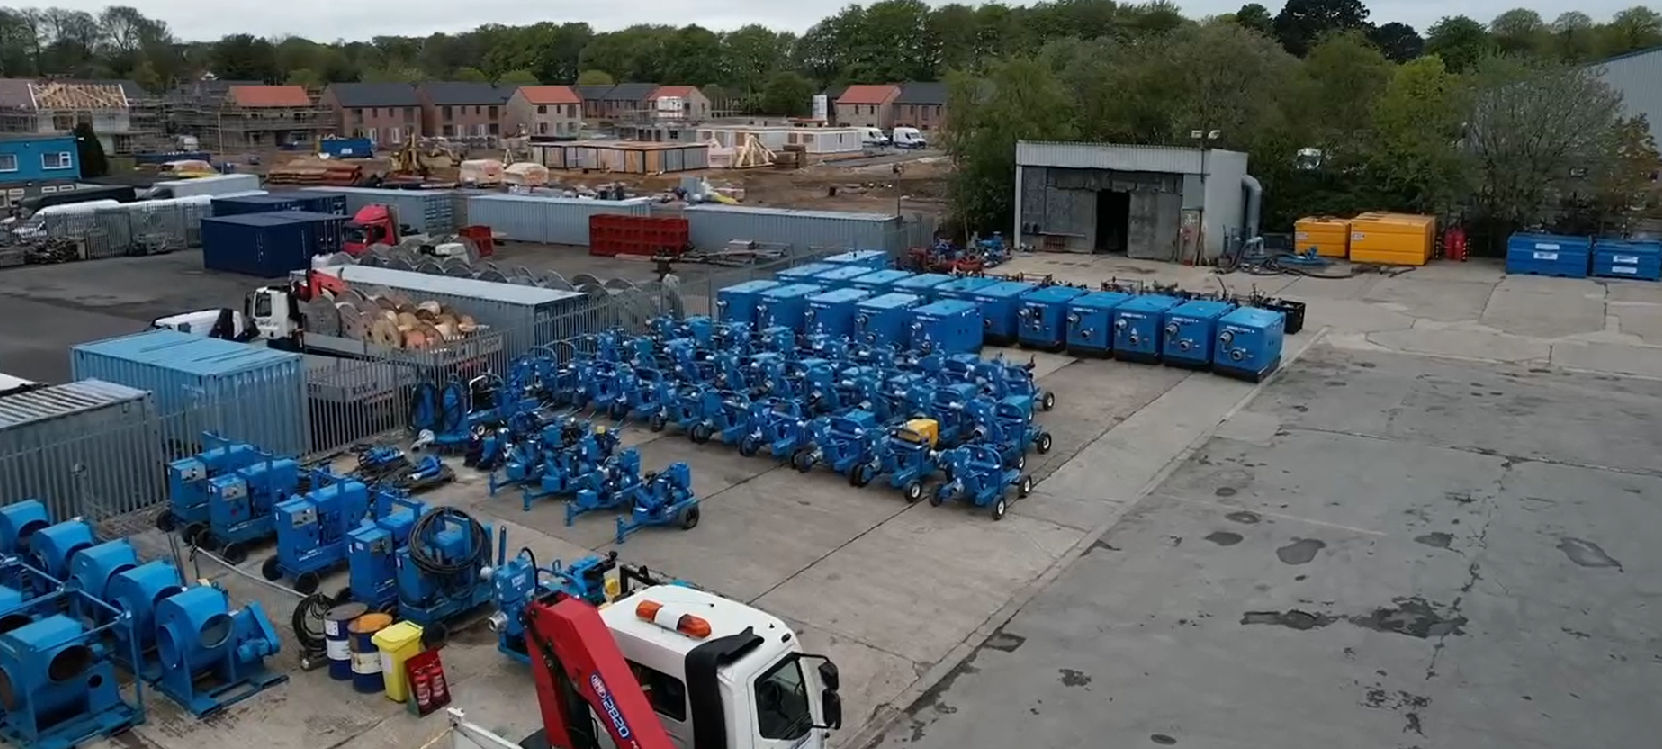 Sedgefield depot investment helps streamline our pump hire services for local customers